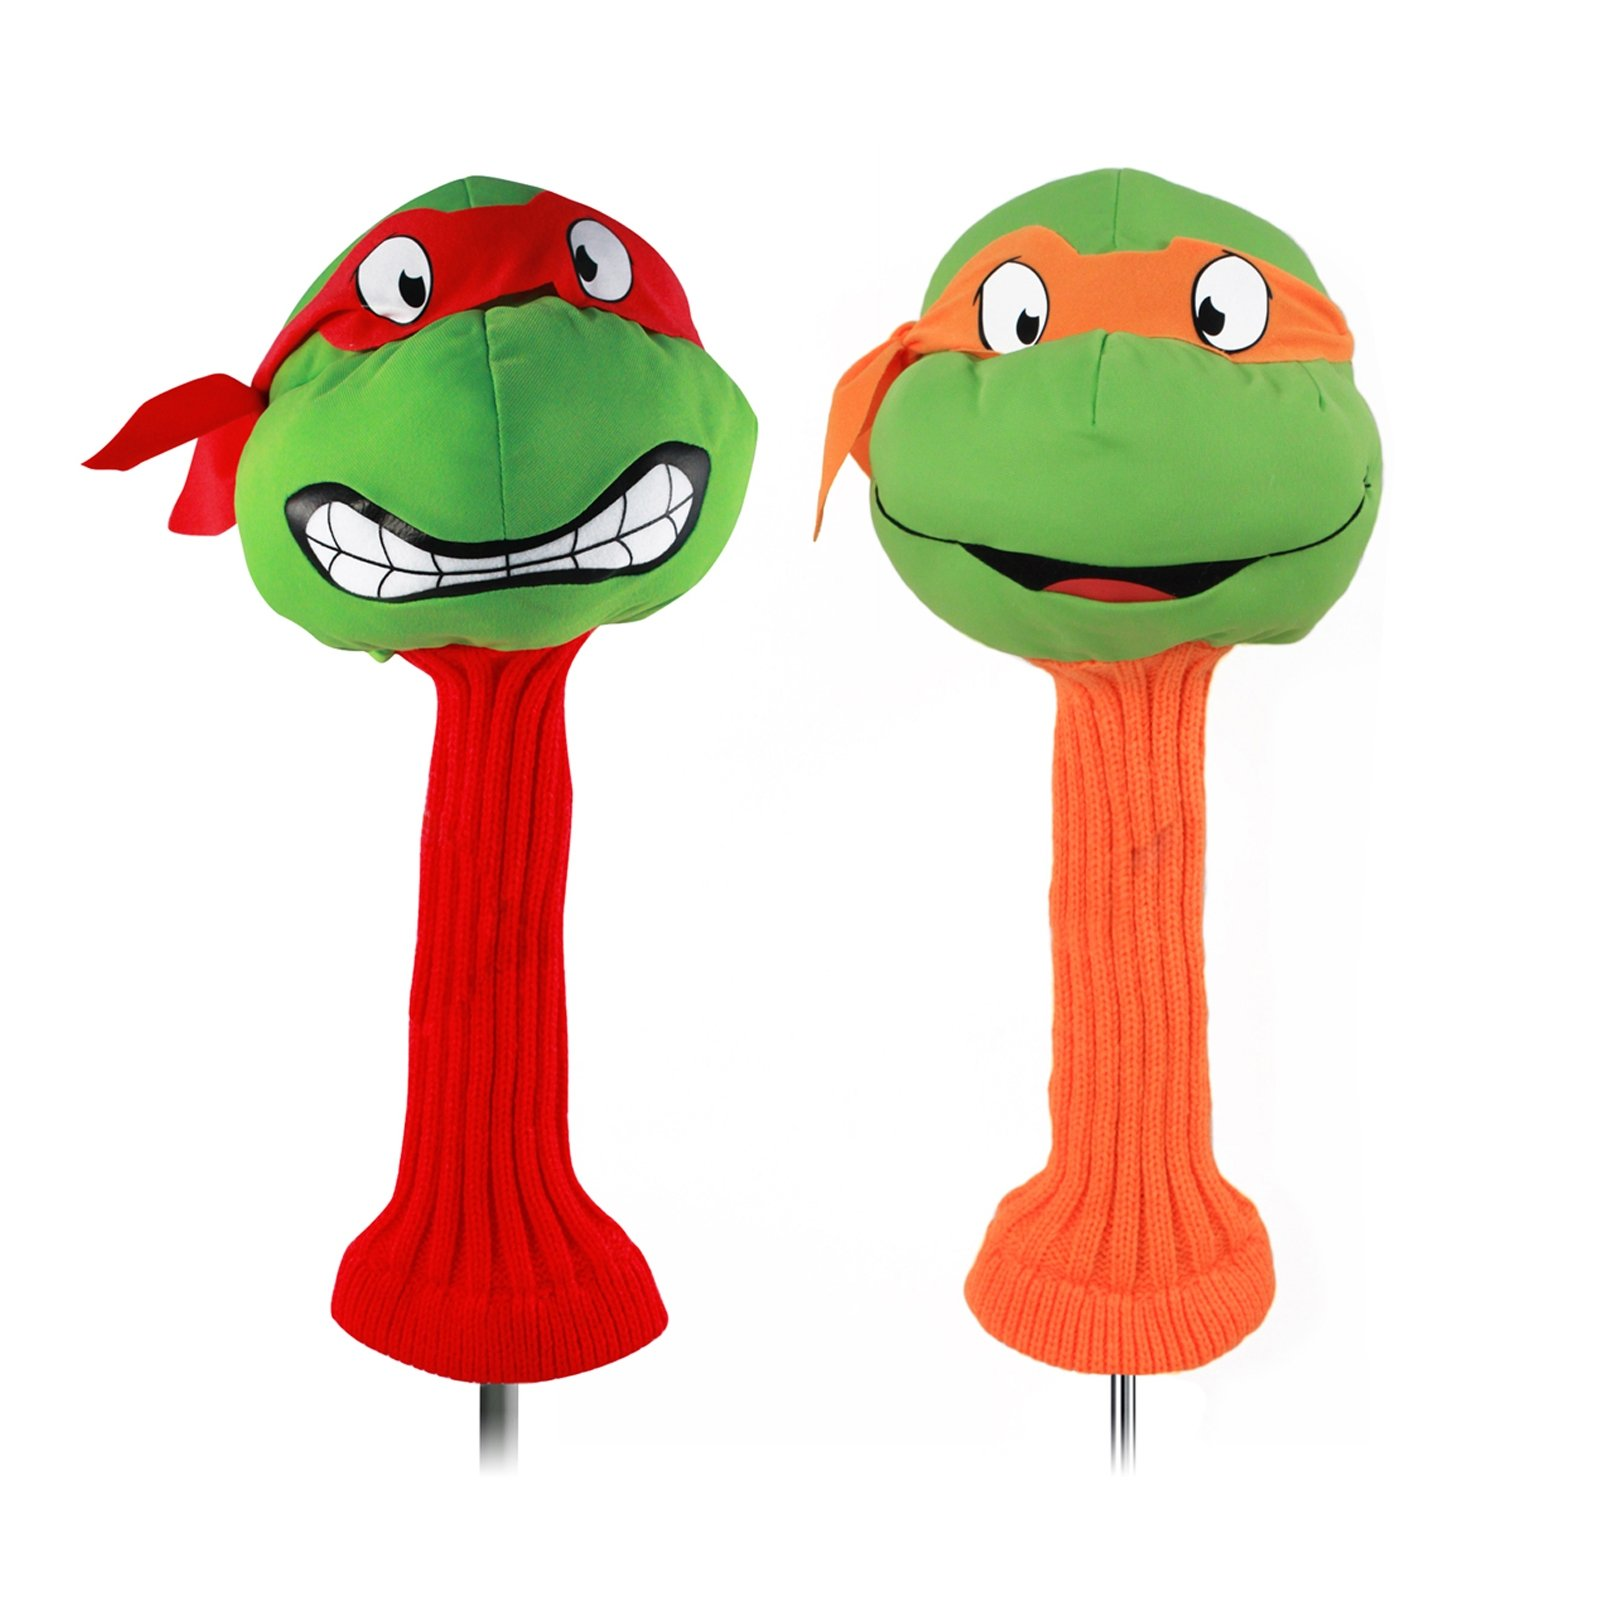 TMNT Collectible 2pc Golf Headcover Set with Raph and Mikey